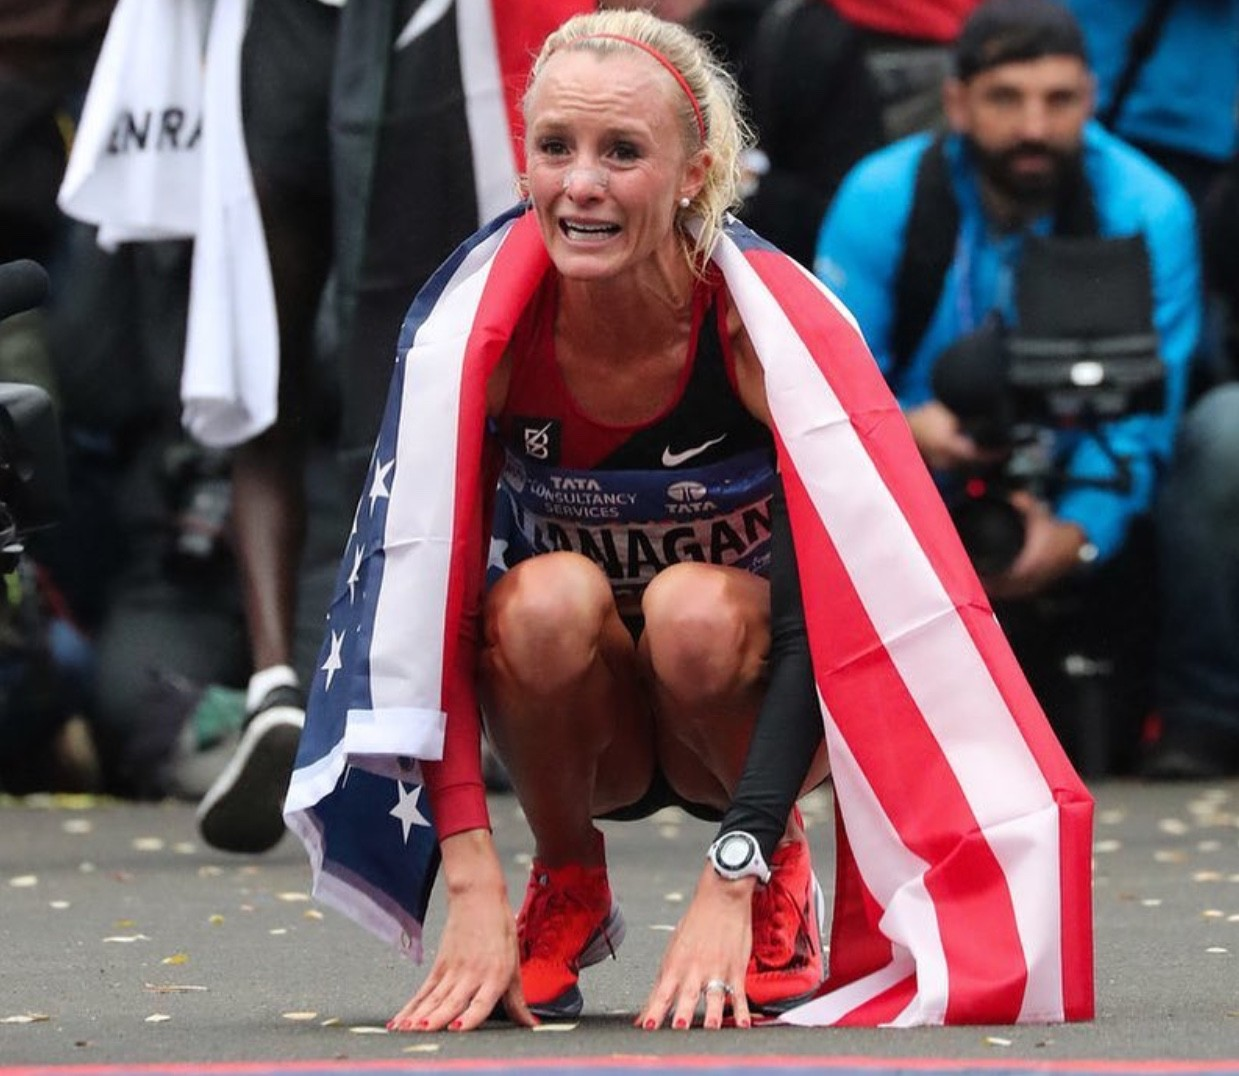 Shalane Flanagan Has To Be The Most Admired Runner Of 2017